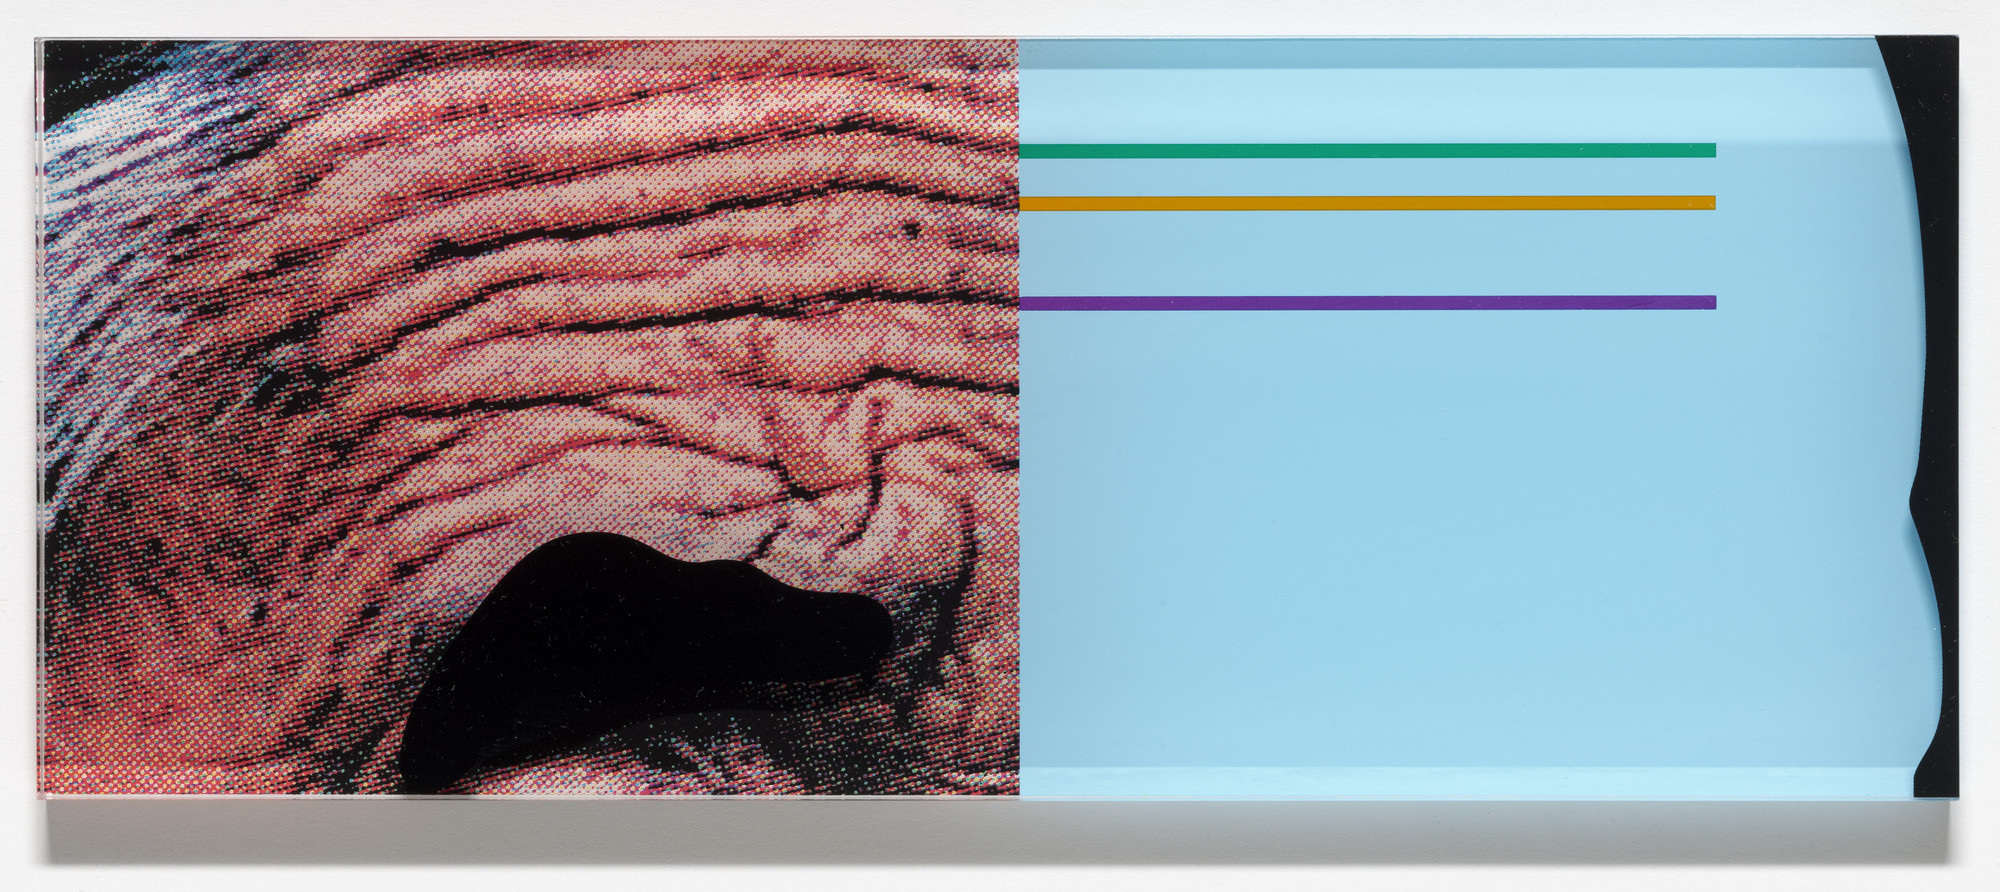 John Baldessari. Raised Eyebrows/Furrowed Foreheads: Crooked Made Straight (for Parkett no. 86). 2009